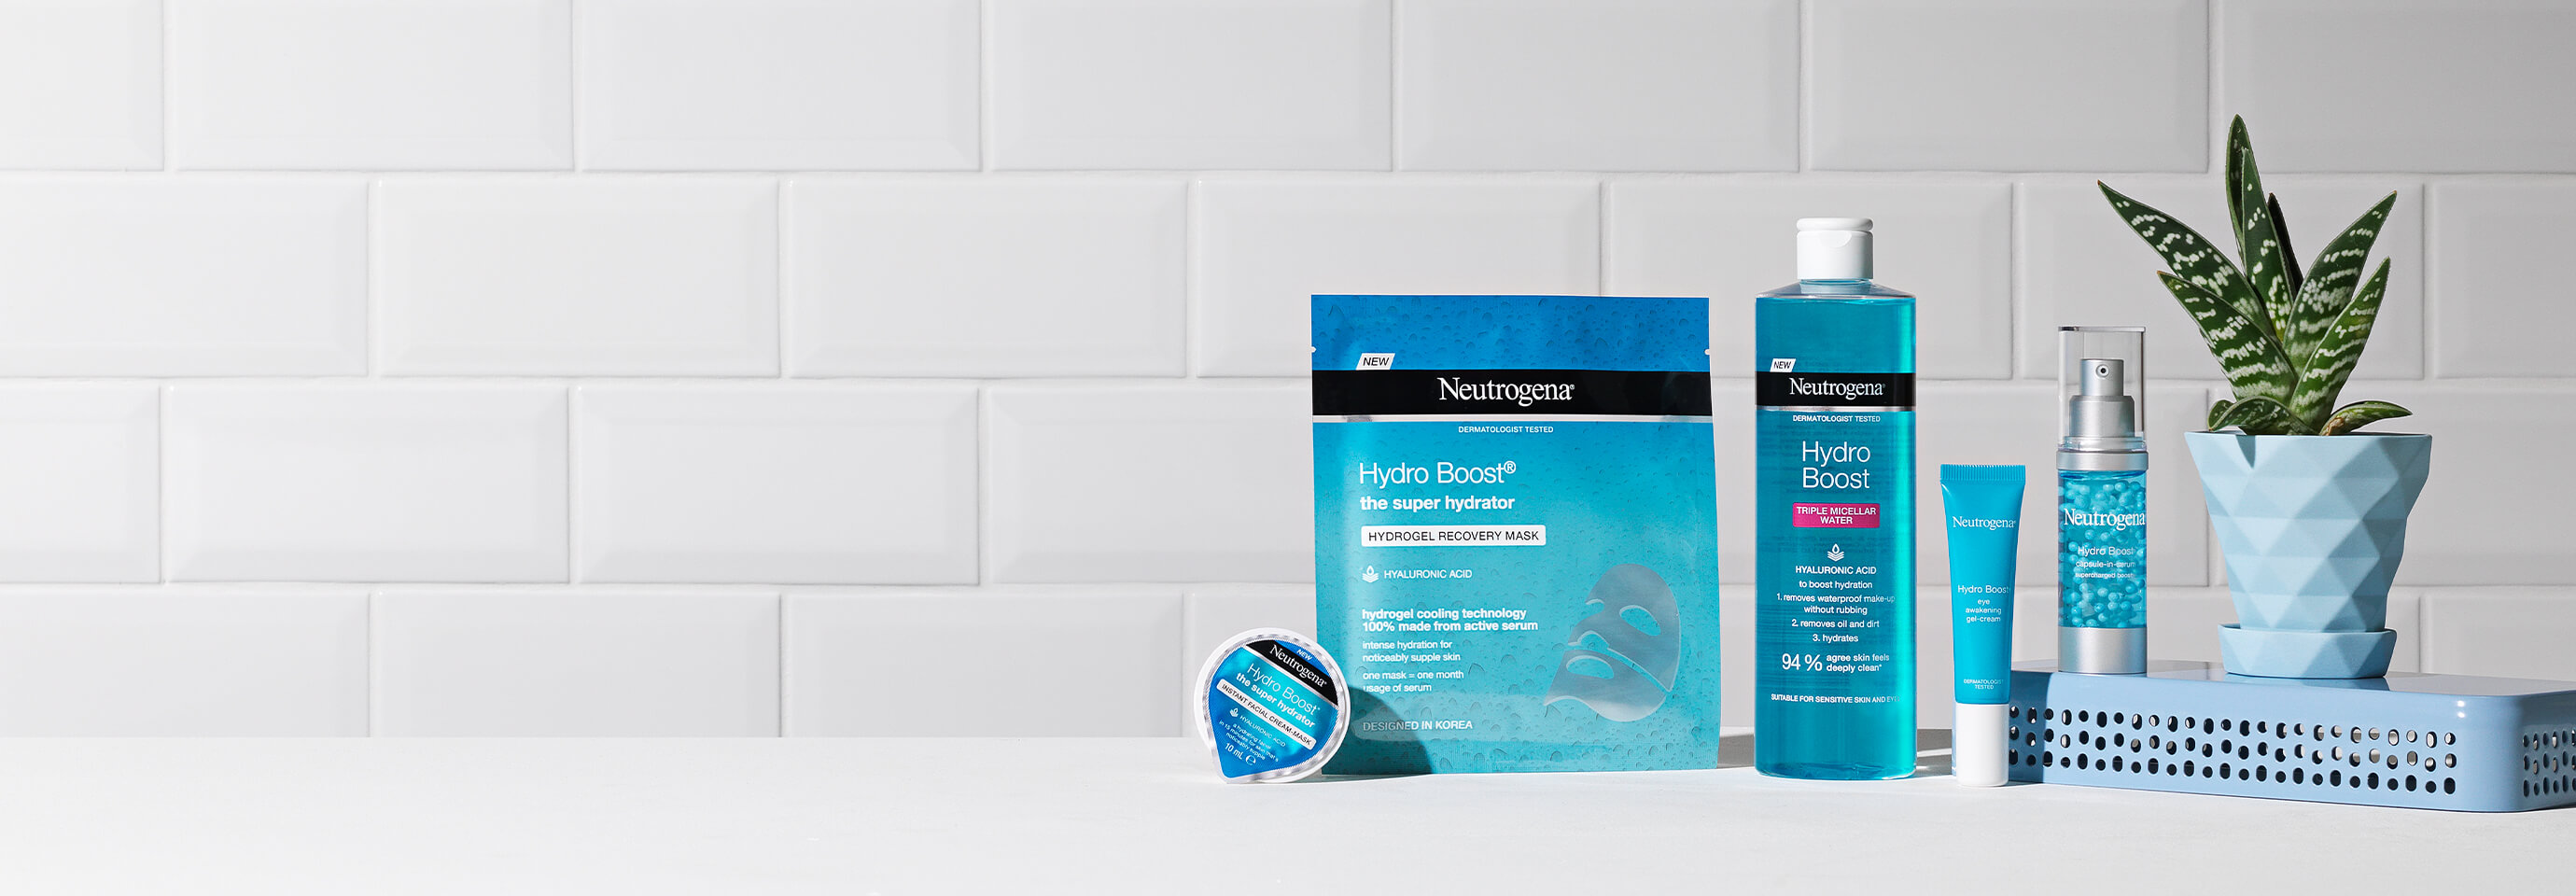 Hydrate at Every Step. Hydration is the foundation for healthy-looking skin. Hydro Boost® is your complete regime.